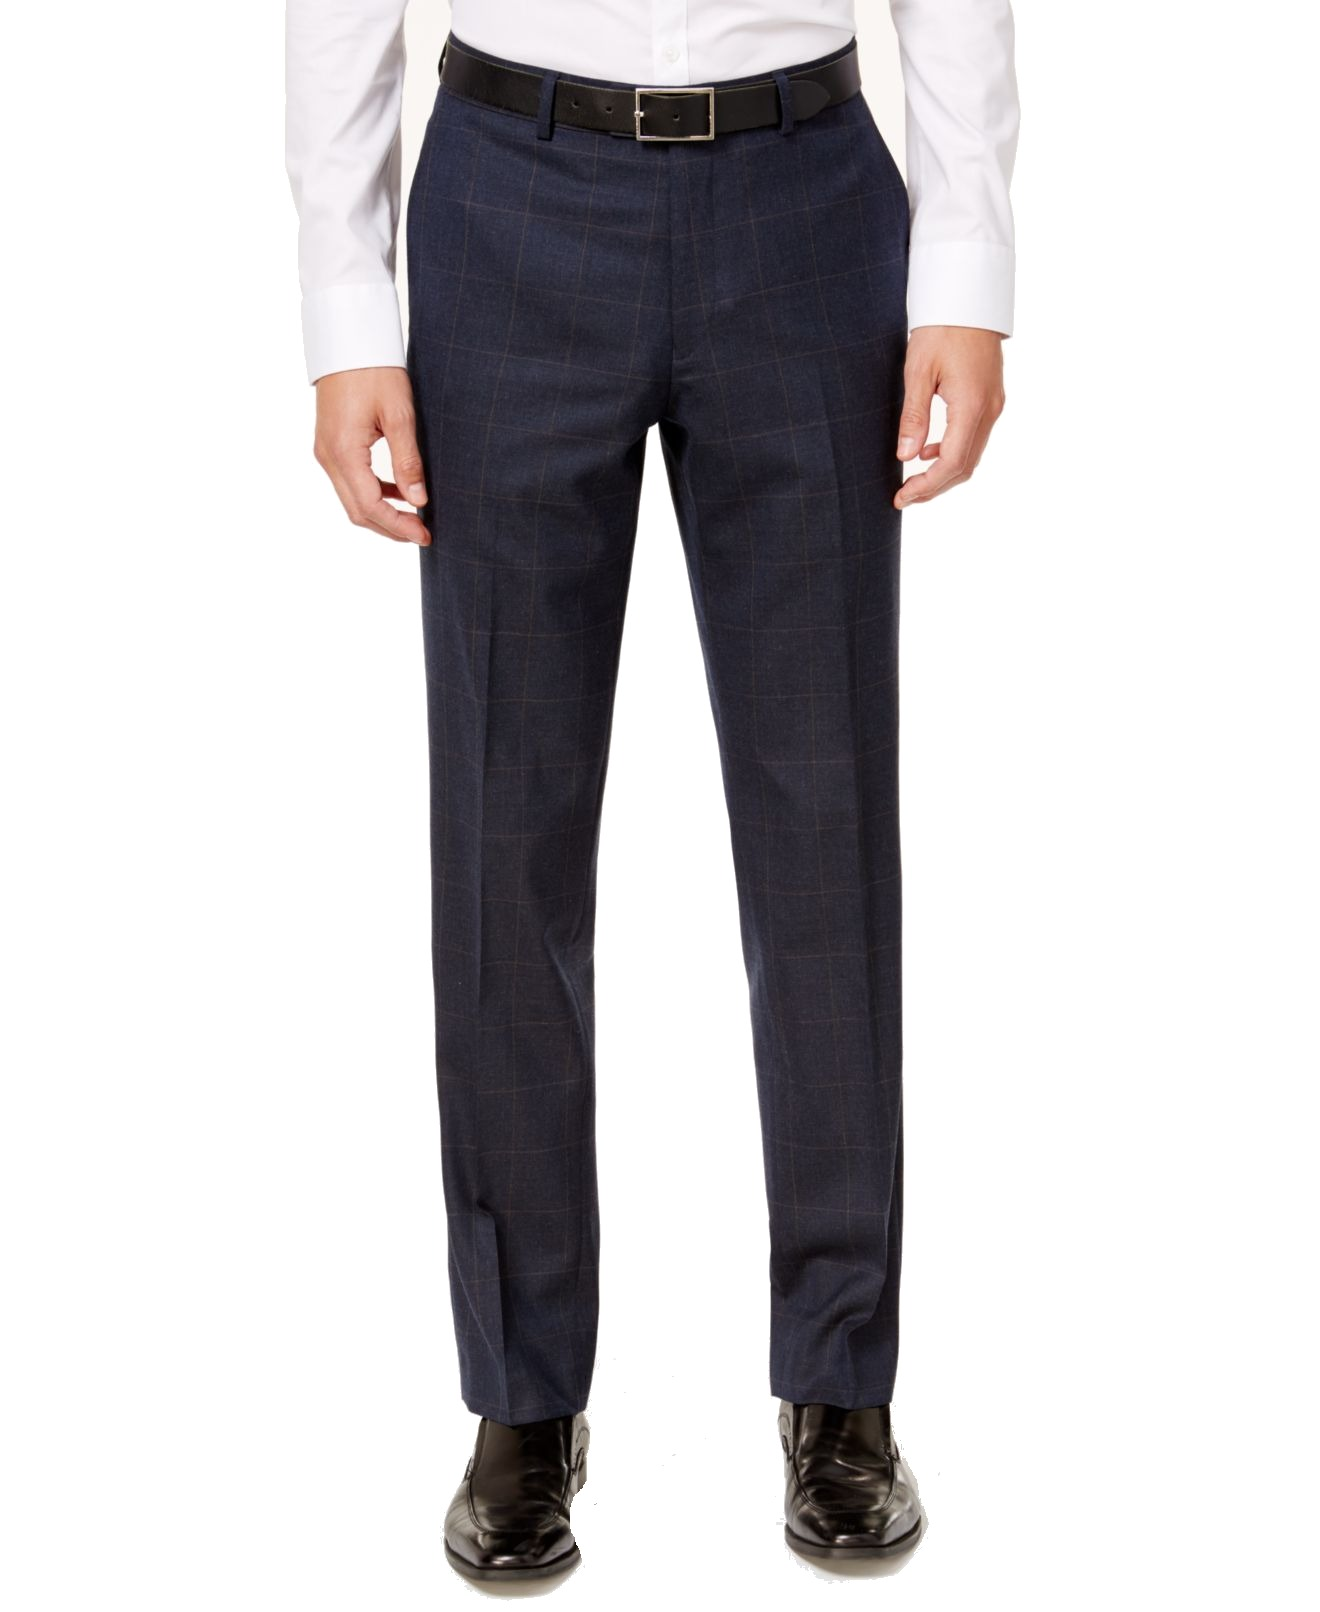 Navy Blue Mens 34x32 Dress Flat Front Wool Pants $175 34